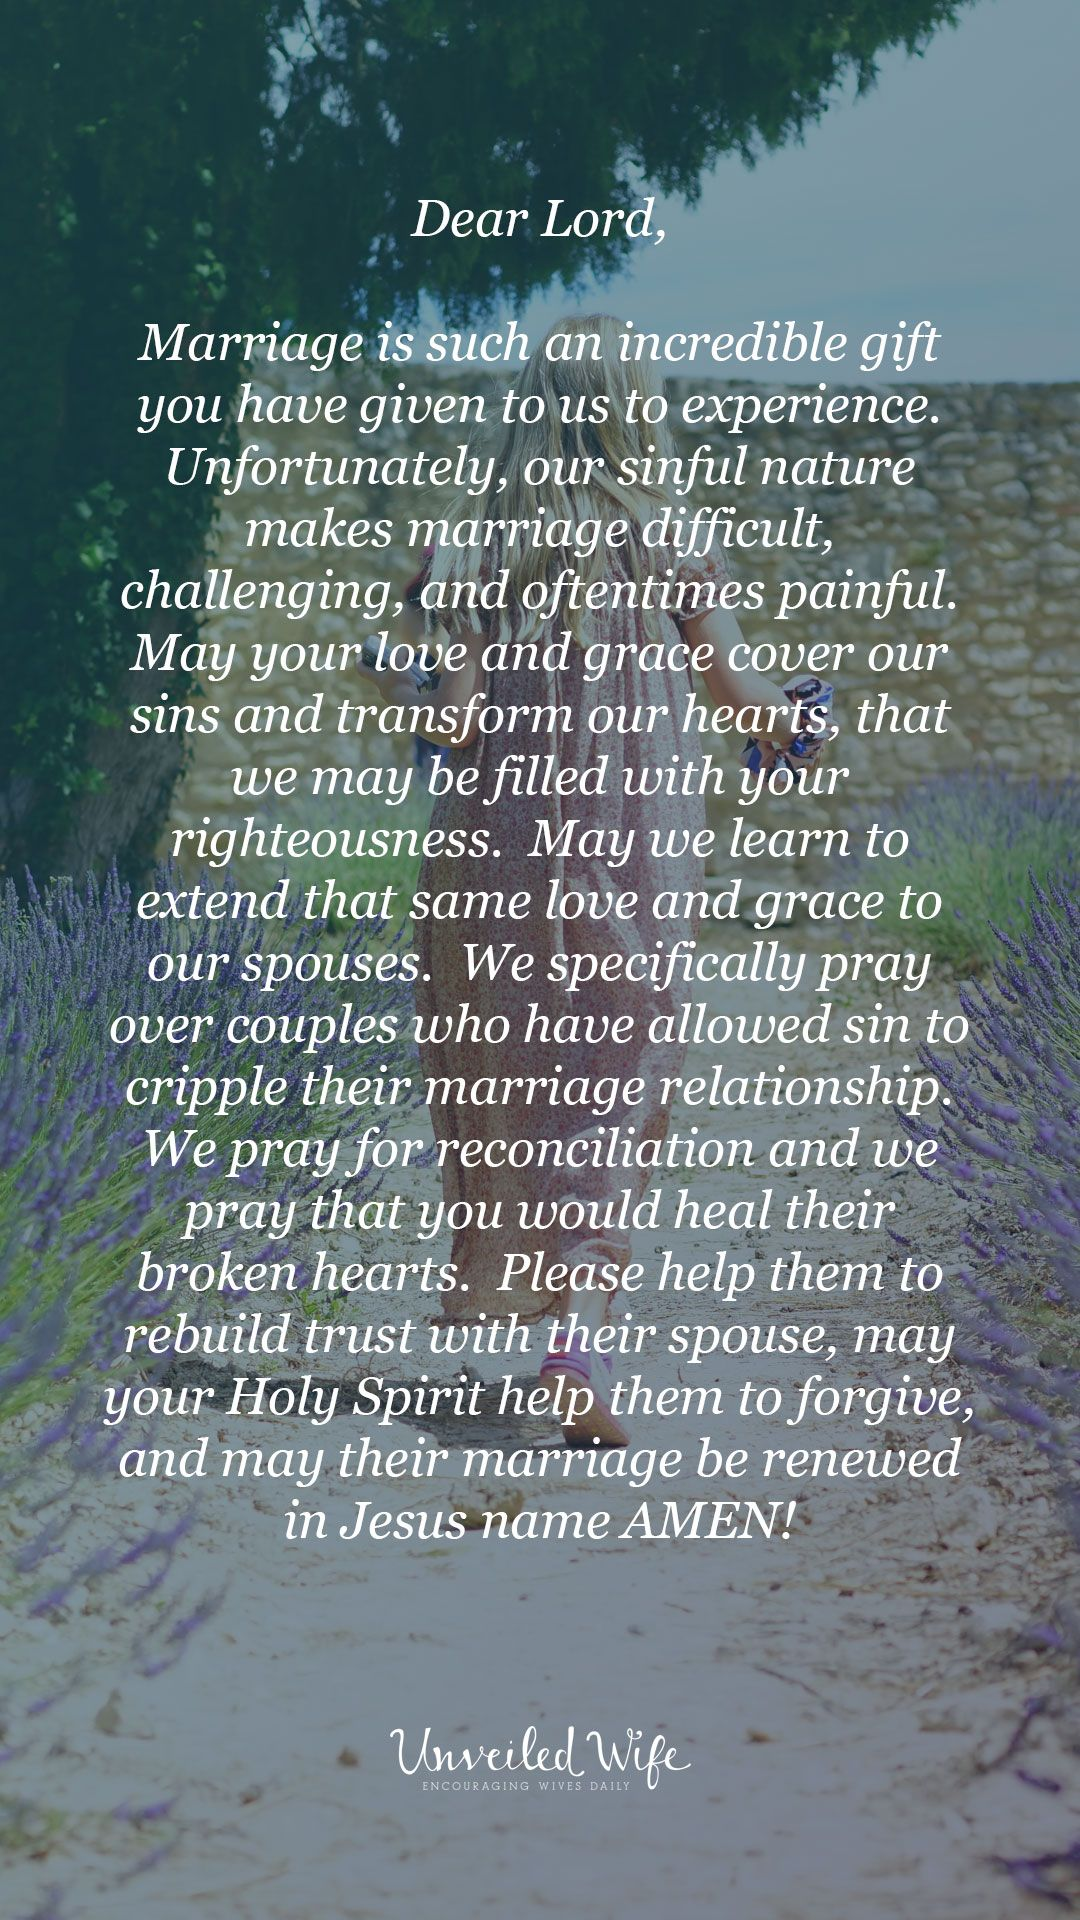 Prayer Of The Day - Rebuilding Trust In Marriage | Marriage